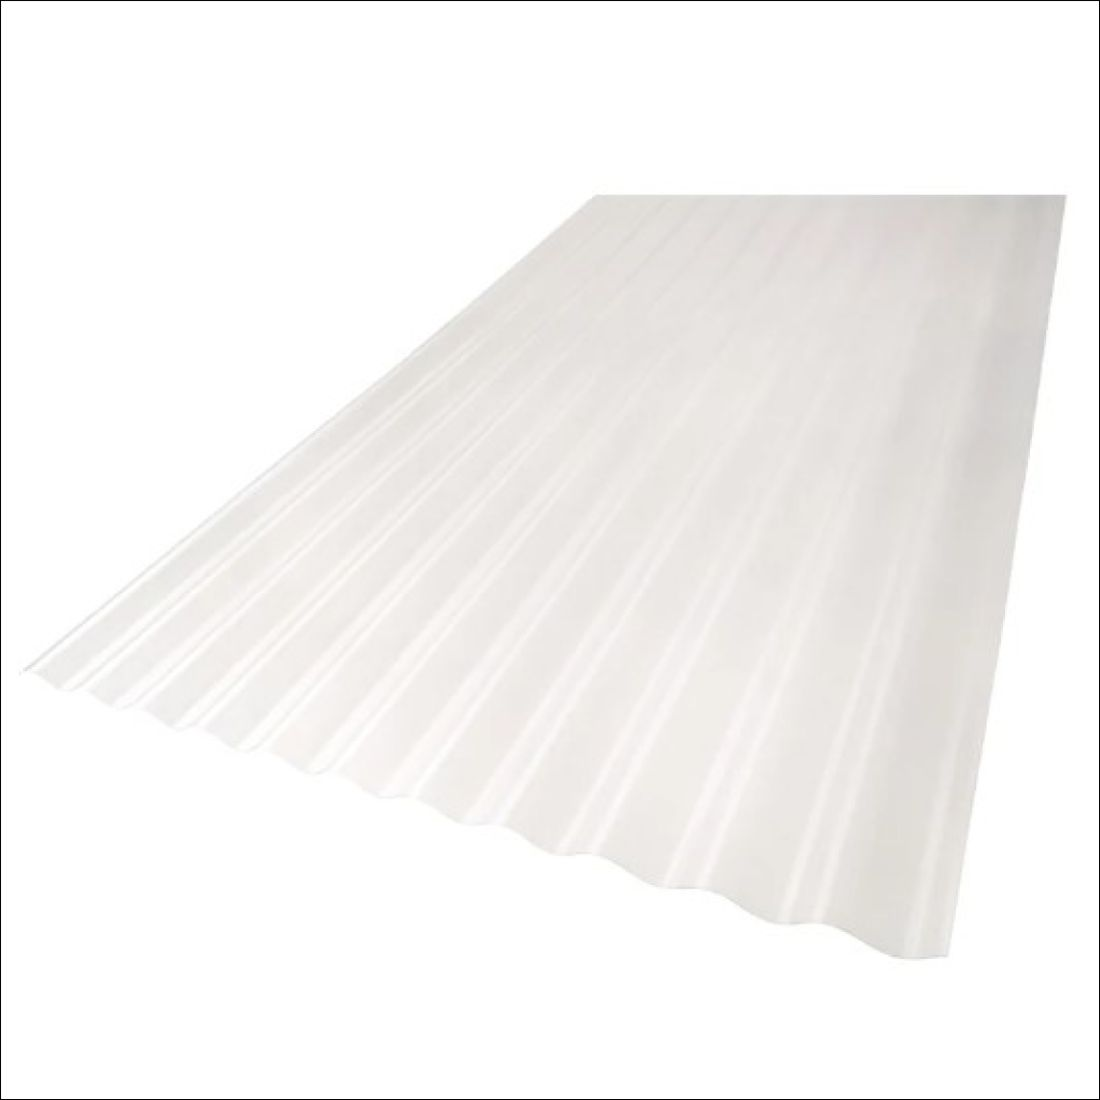 Corrugated  Clear 2700 x 860mm